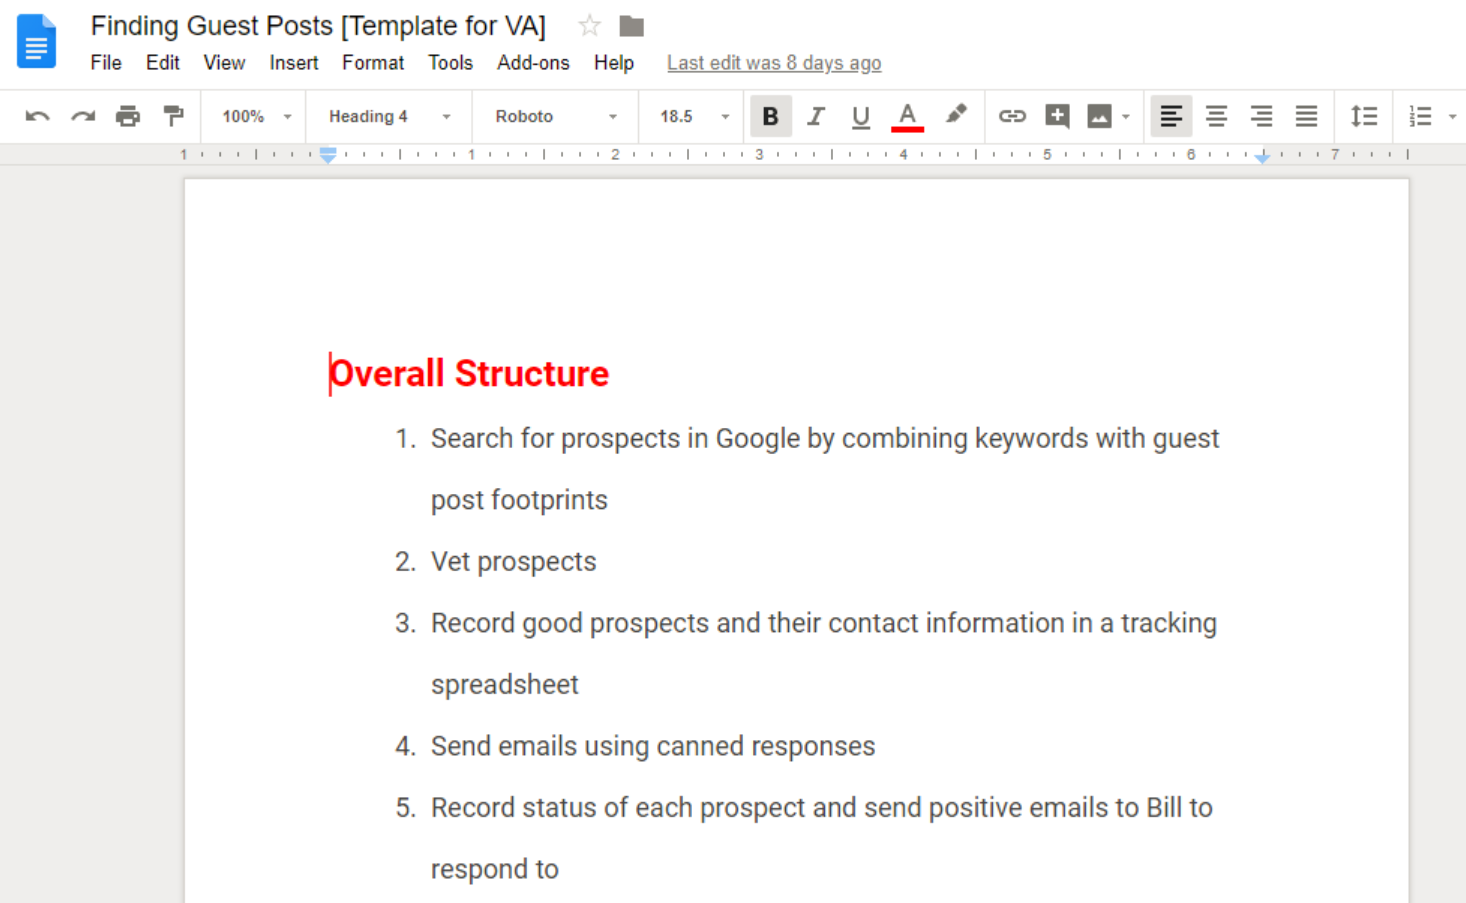 Google Docs Tool for eCommerce Businesses